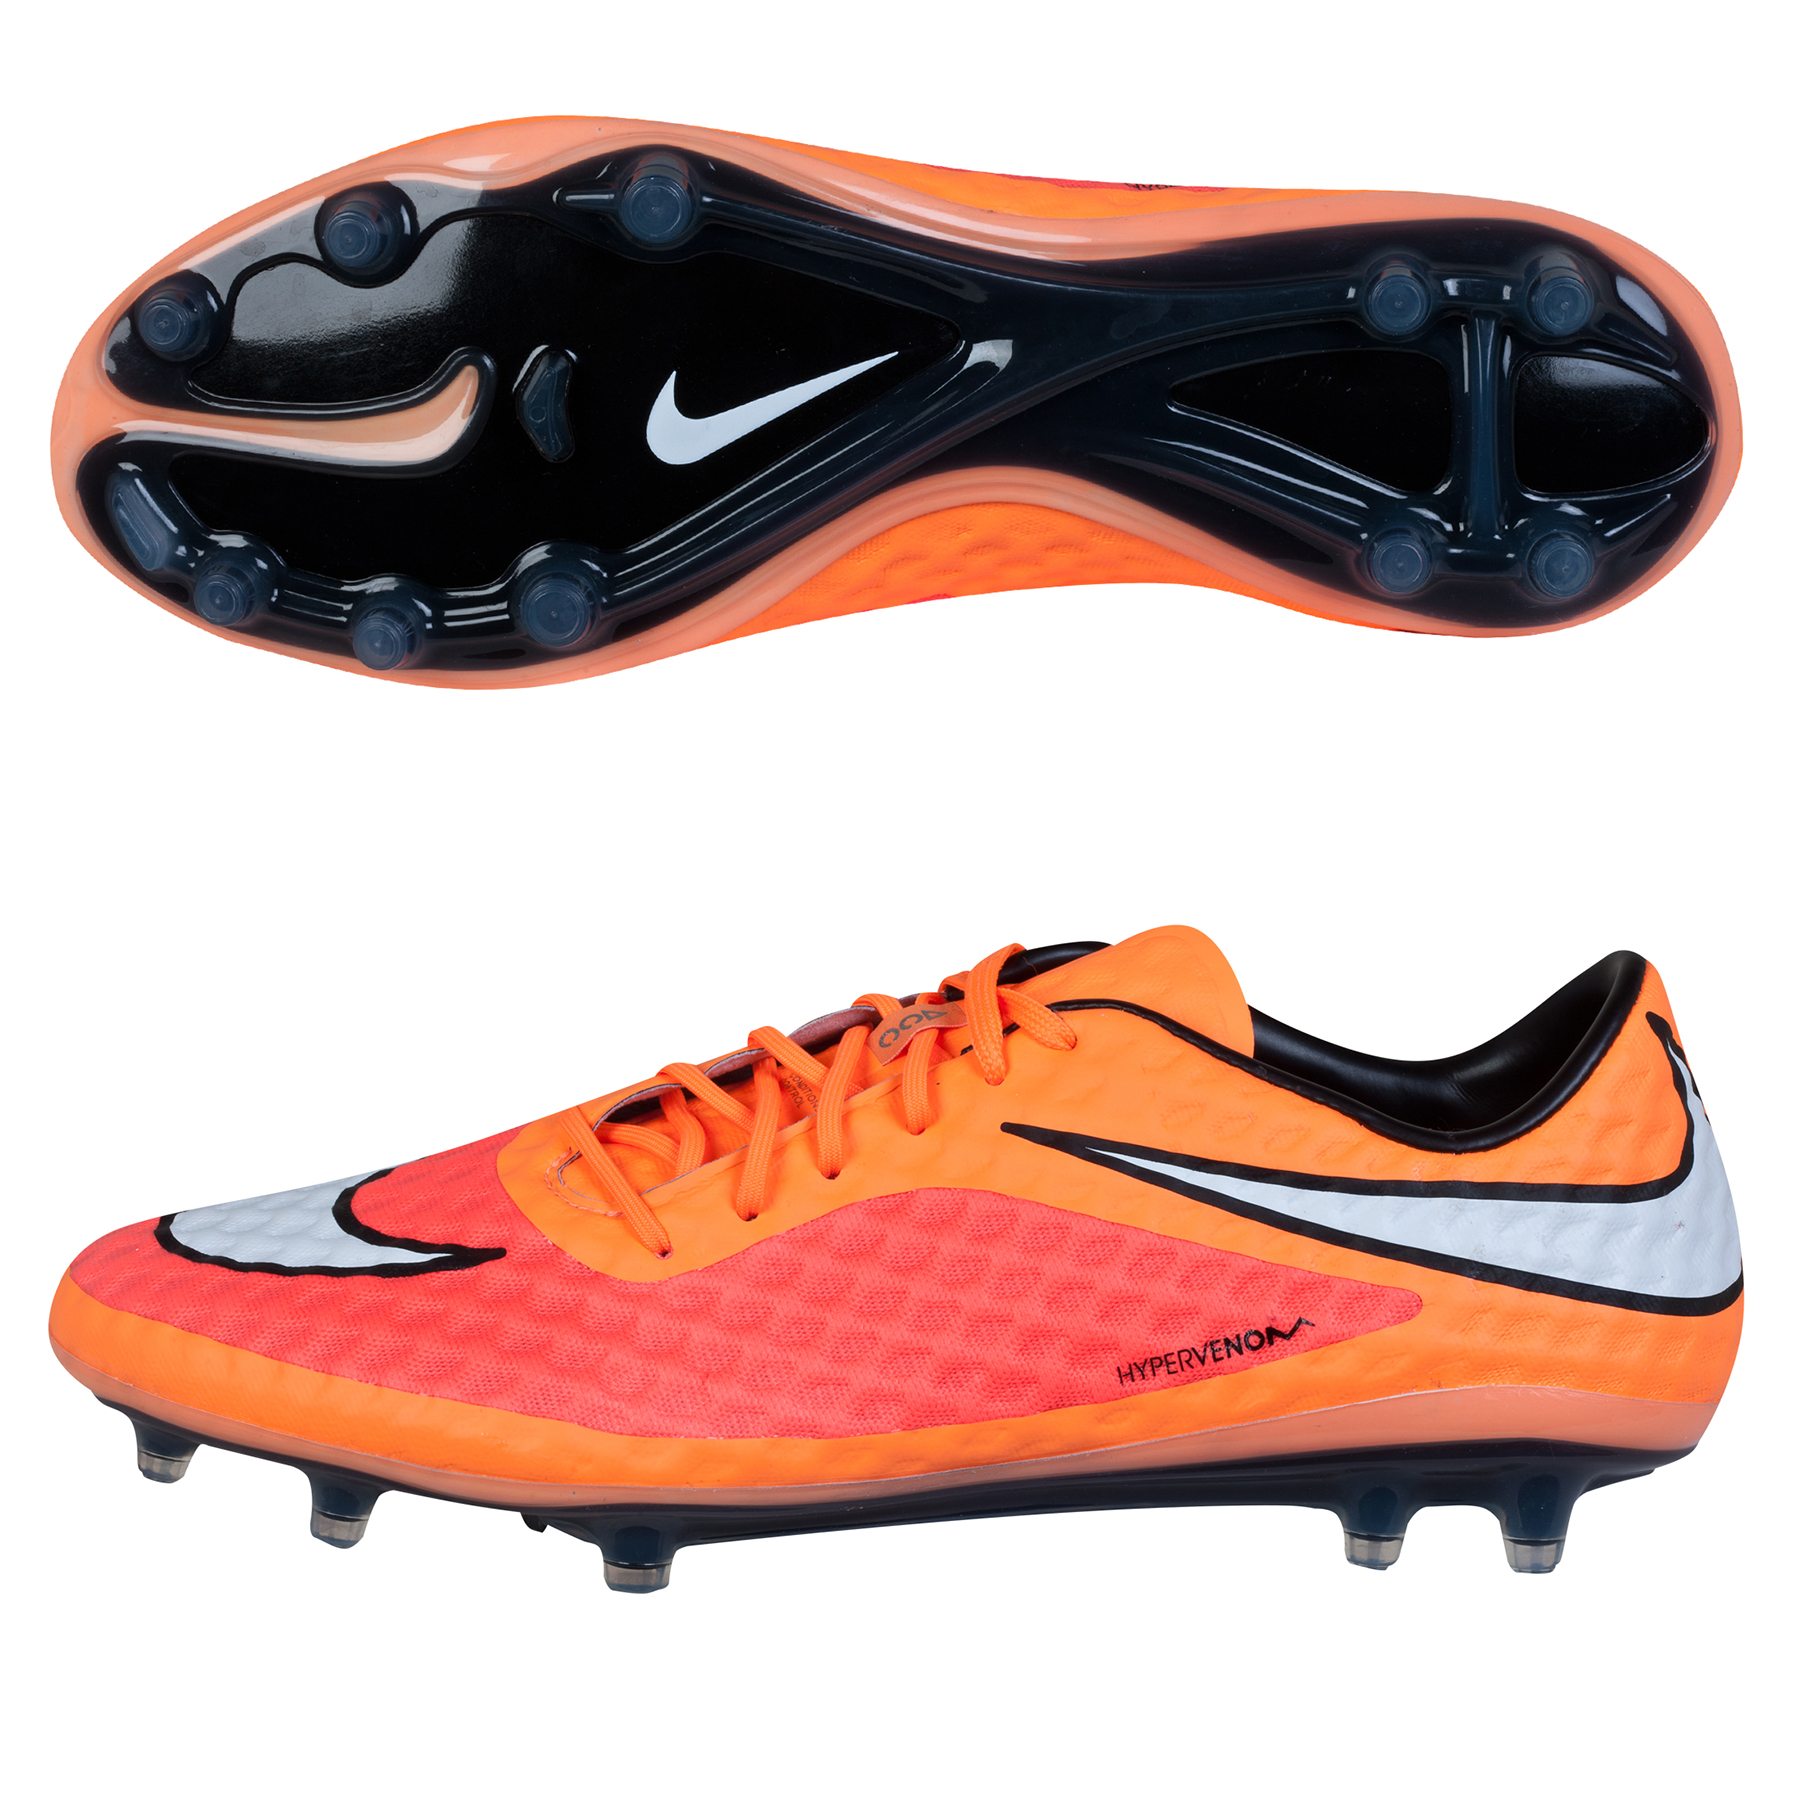 Nike Hypervenom Phantom Firm Ground Football Boots Orange